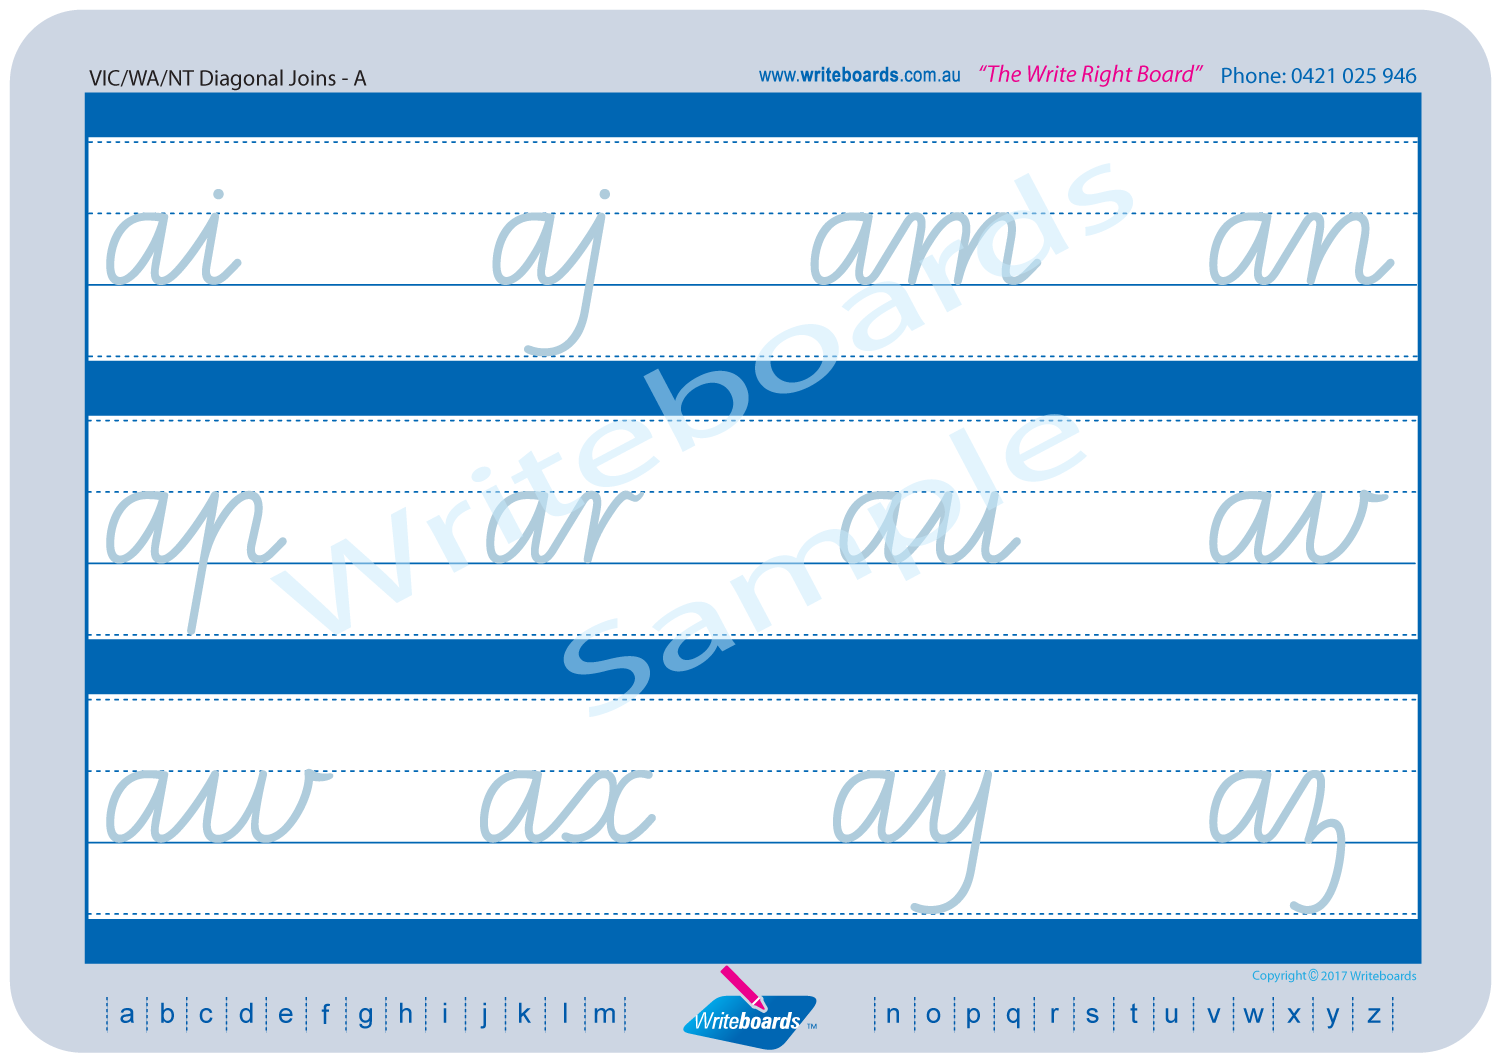 ... VIC Modern Cursive Font Worksheets using Cursive Writing created by  Writeboards ...